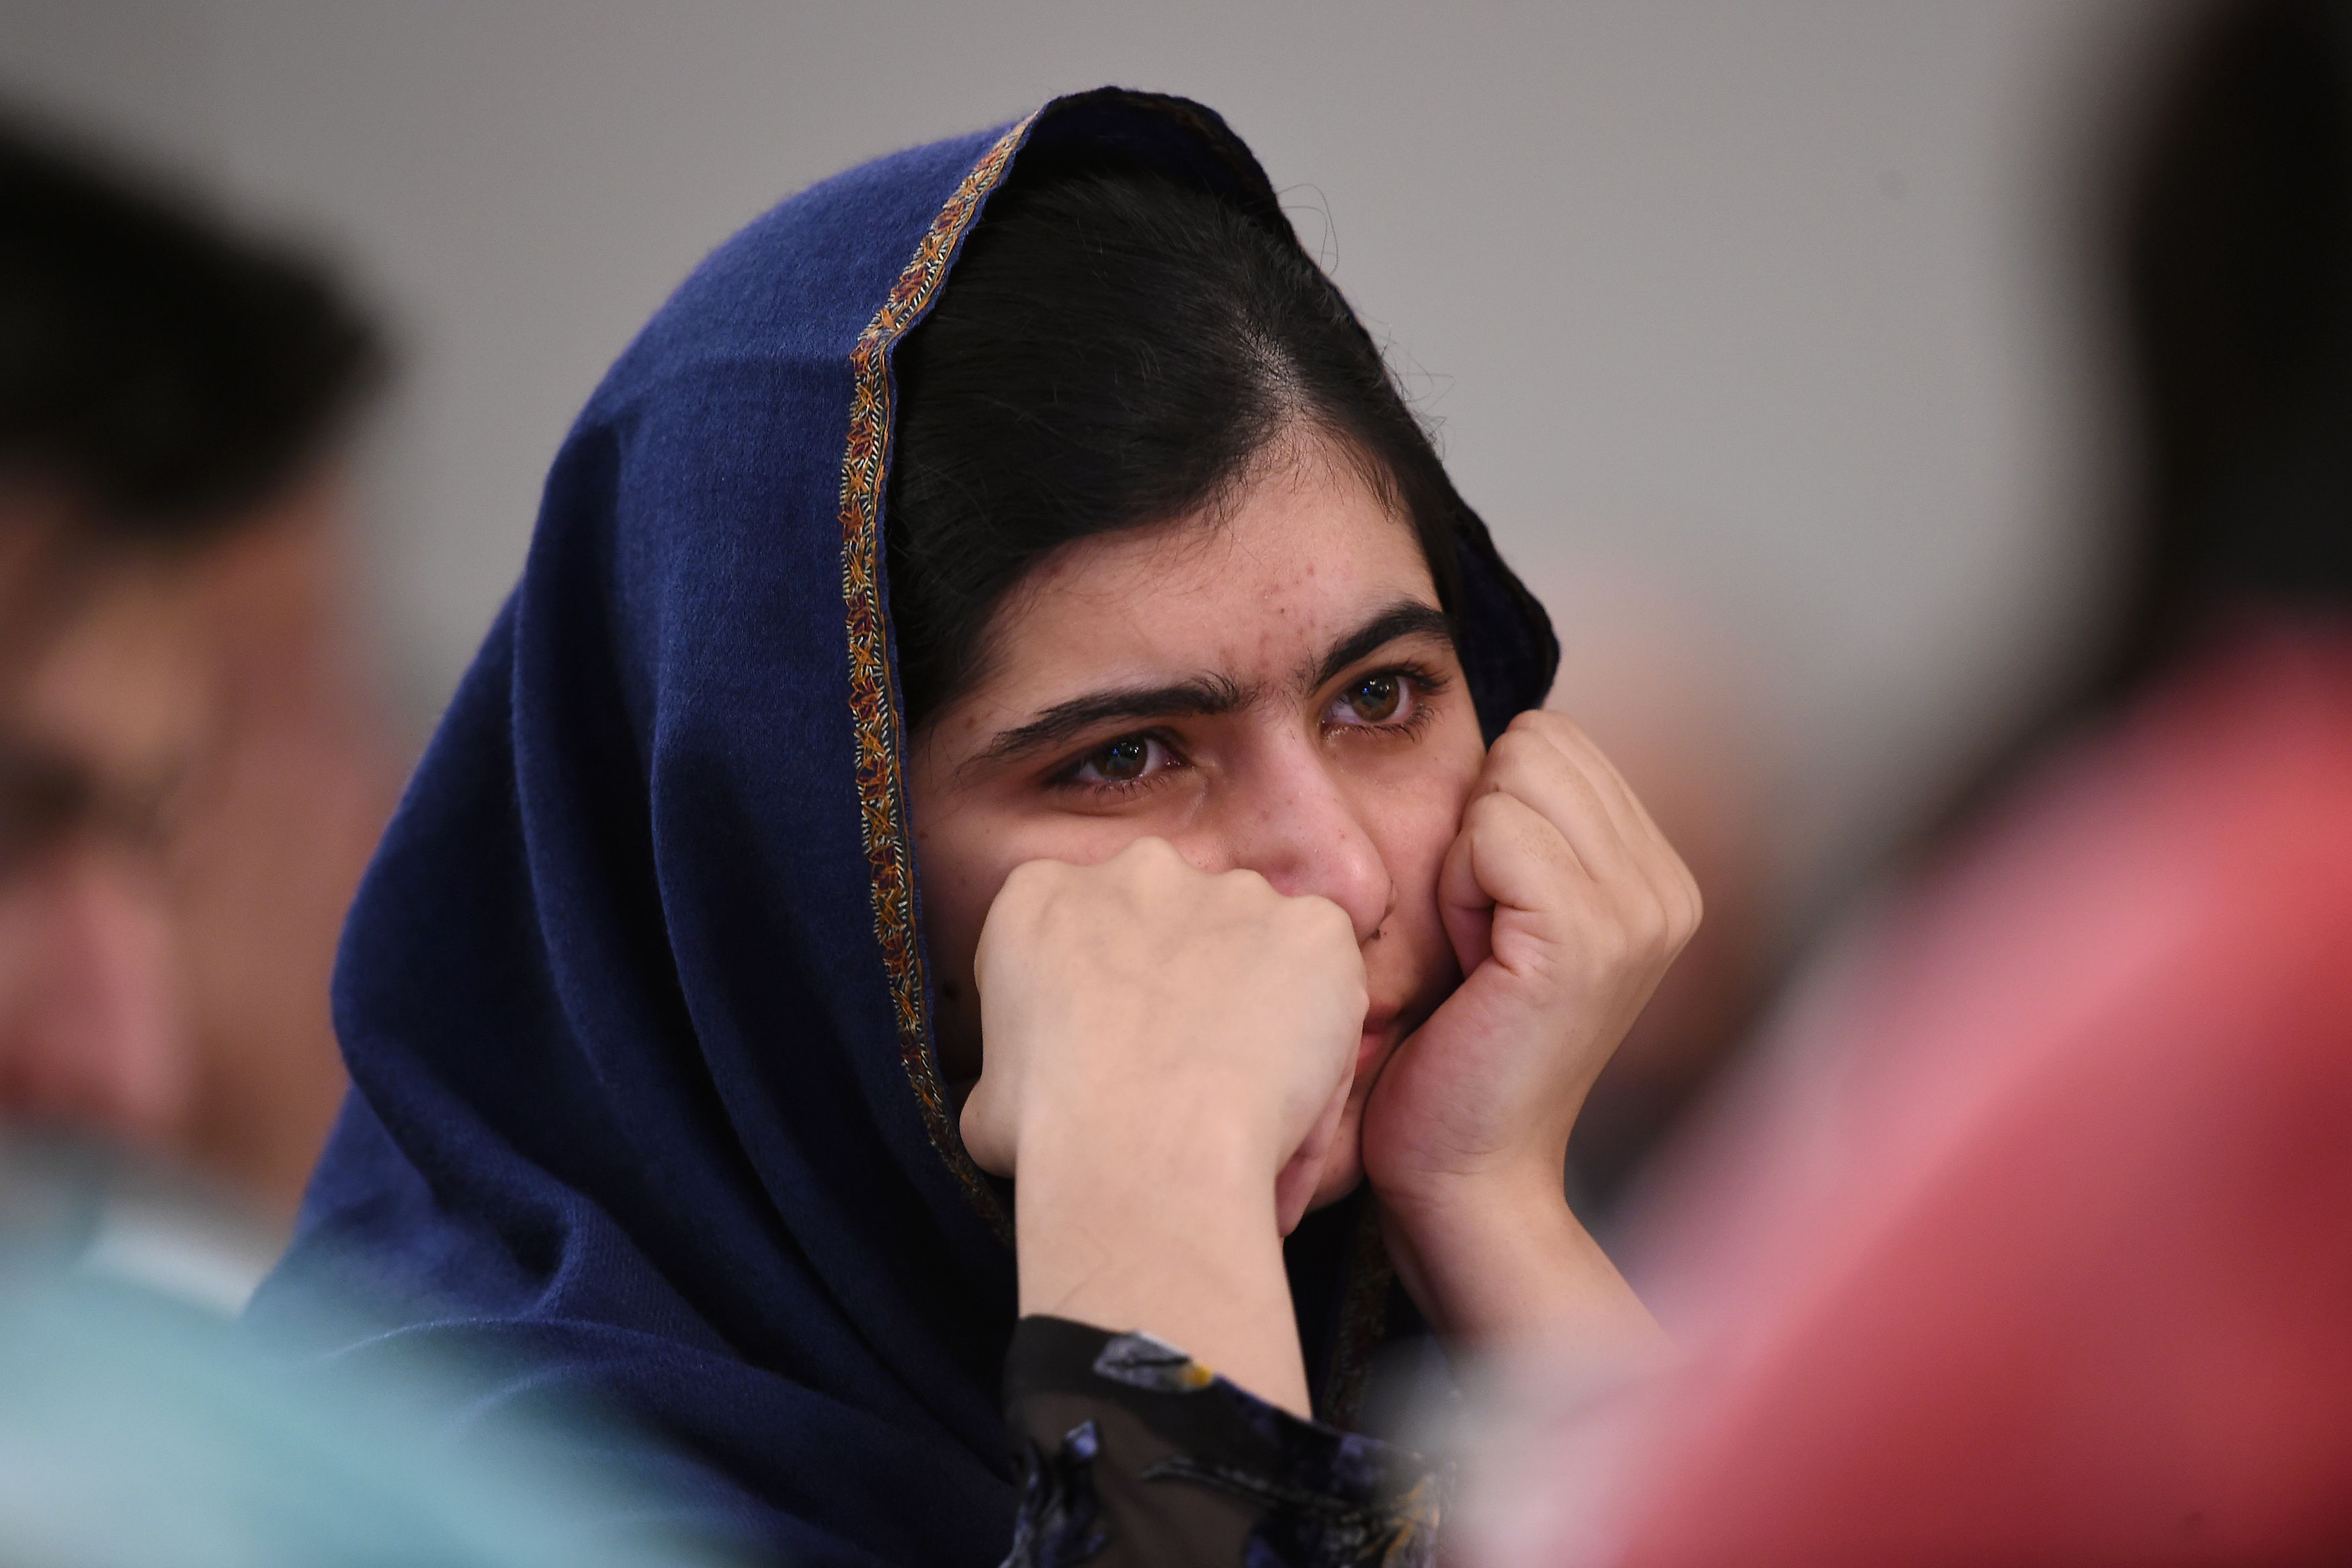 Malala Yousafzai - Bio, News, Photos - Washington Times